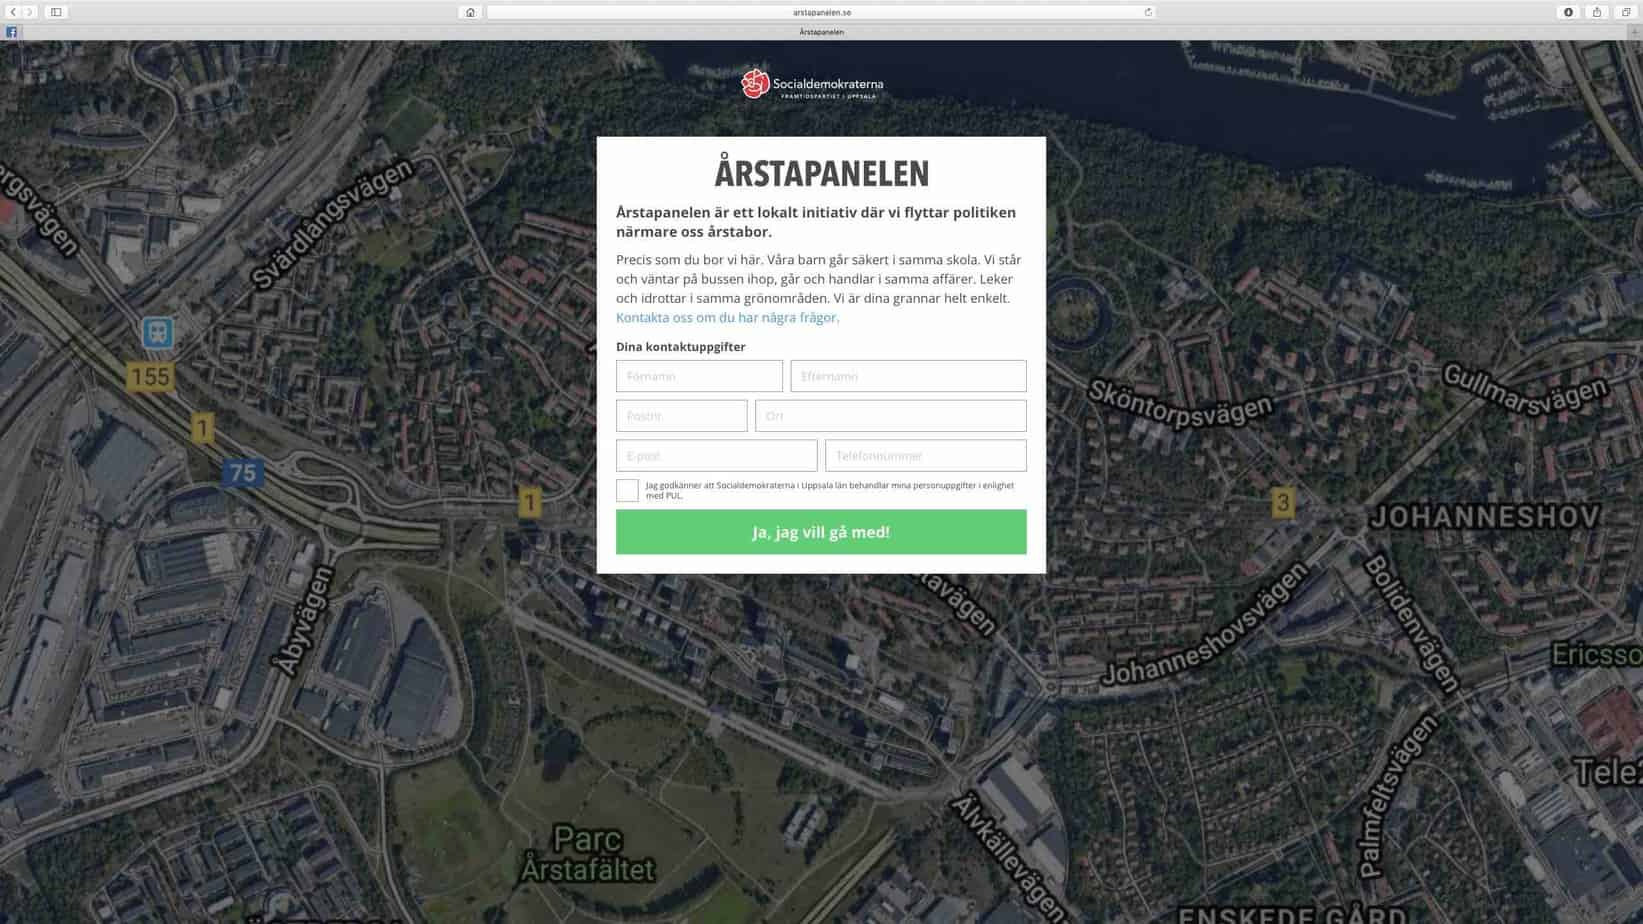 ARSTAPANELEN - Screen Shot.jpg